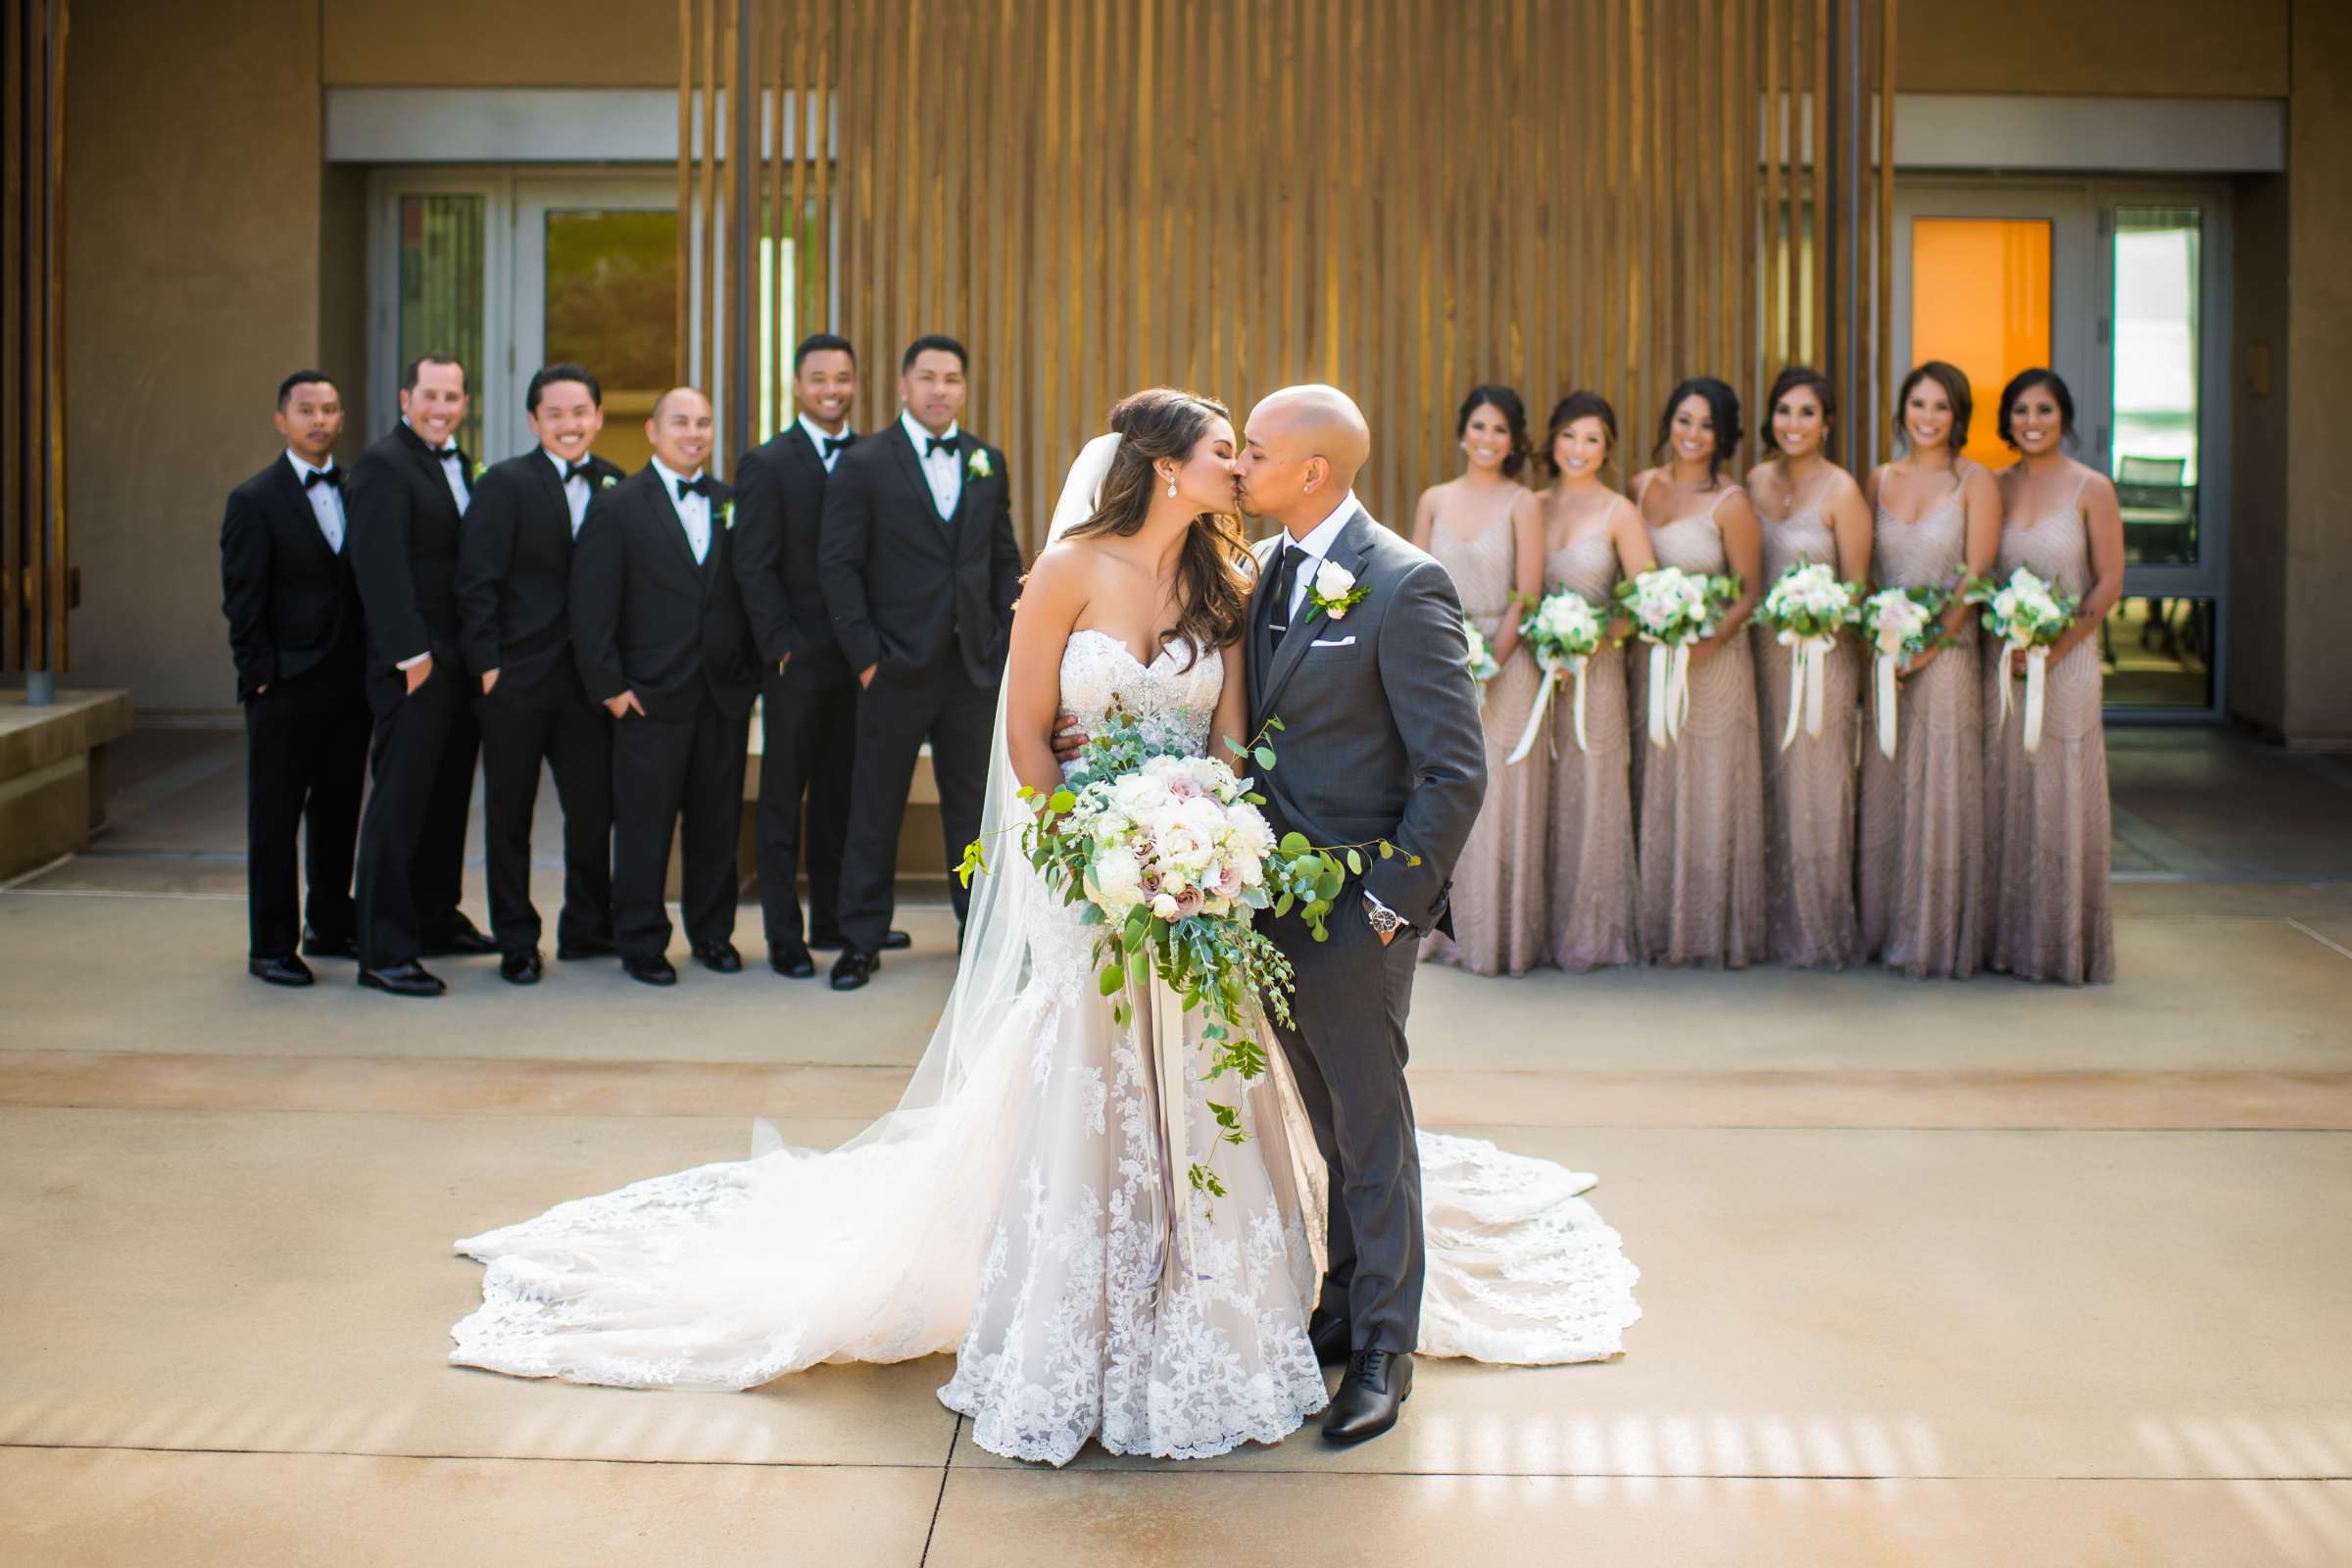 Scripps Seaside Forum Wedding coordinated by Lavish Weddings, Cindy and Justin Wedding Photo #381775 by True Photography